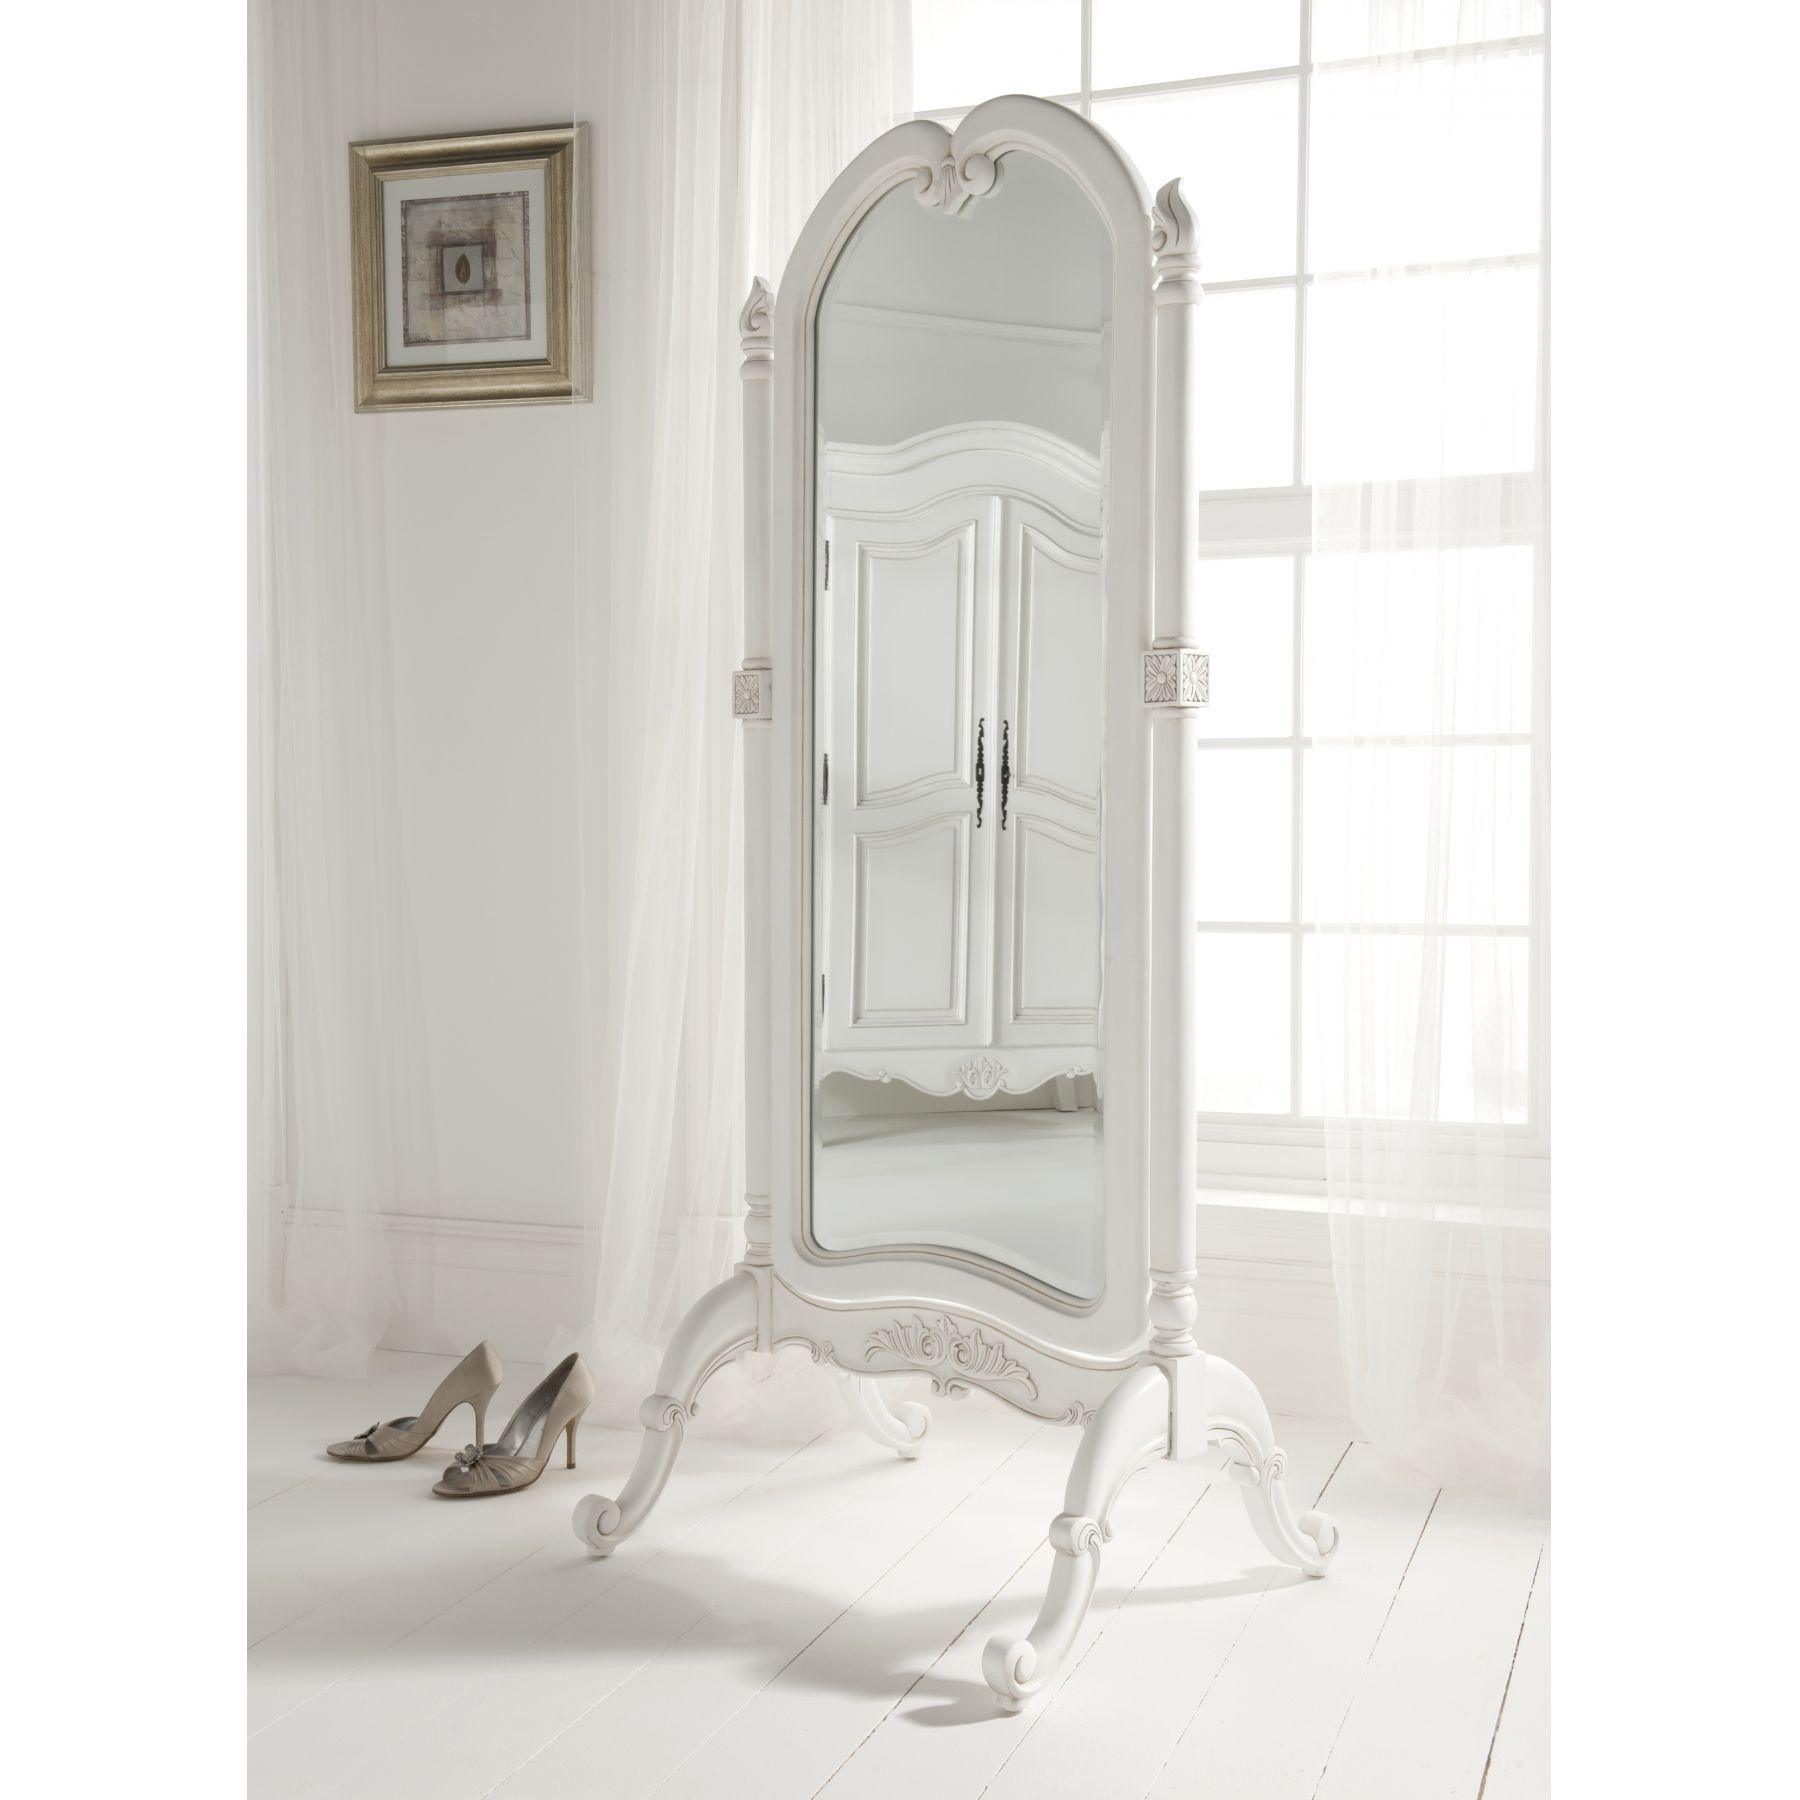 Full Length Mirror On Stand Fearsome On Modern Home Decor Ideas Within Full Length Free Standing Mirror With Drawer (Image 12 of 15)